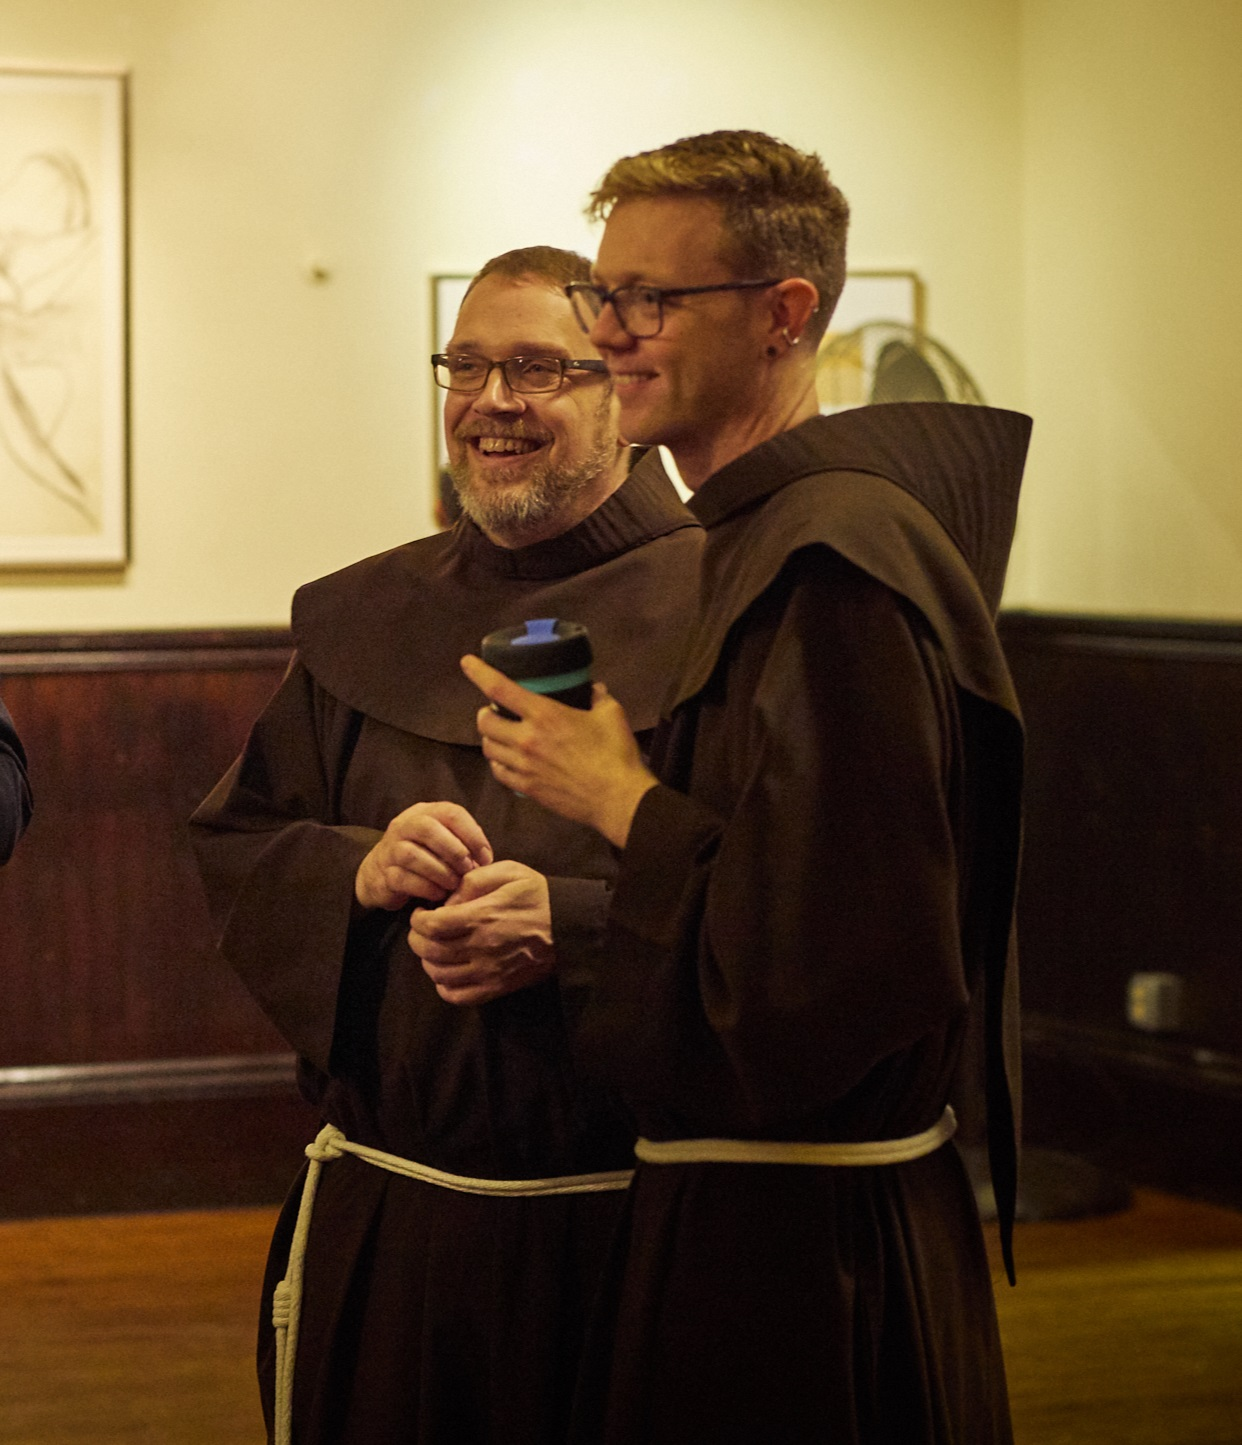 Brother Damien Joseph (L) and Brother Thomas from the Society of Saint Francis